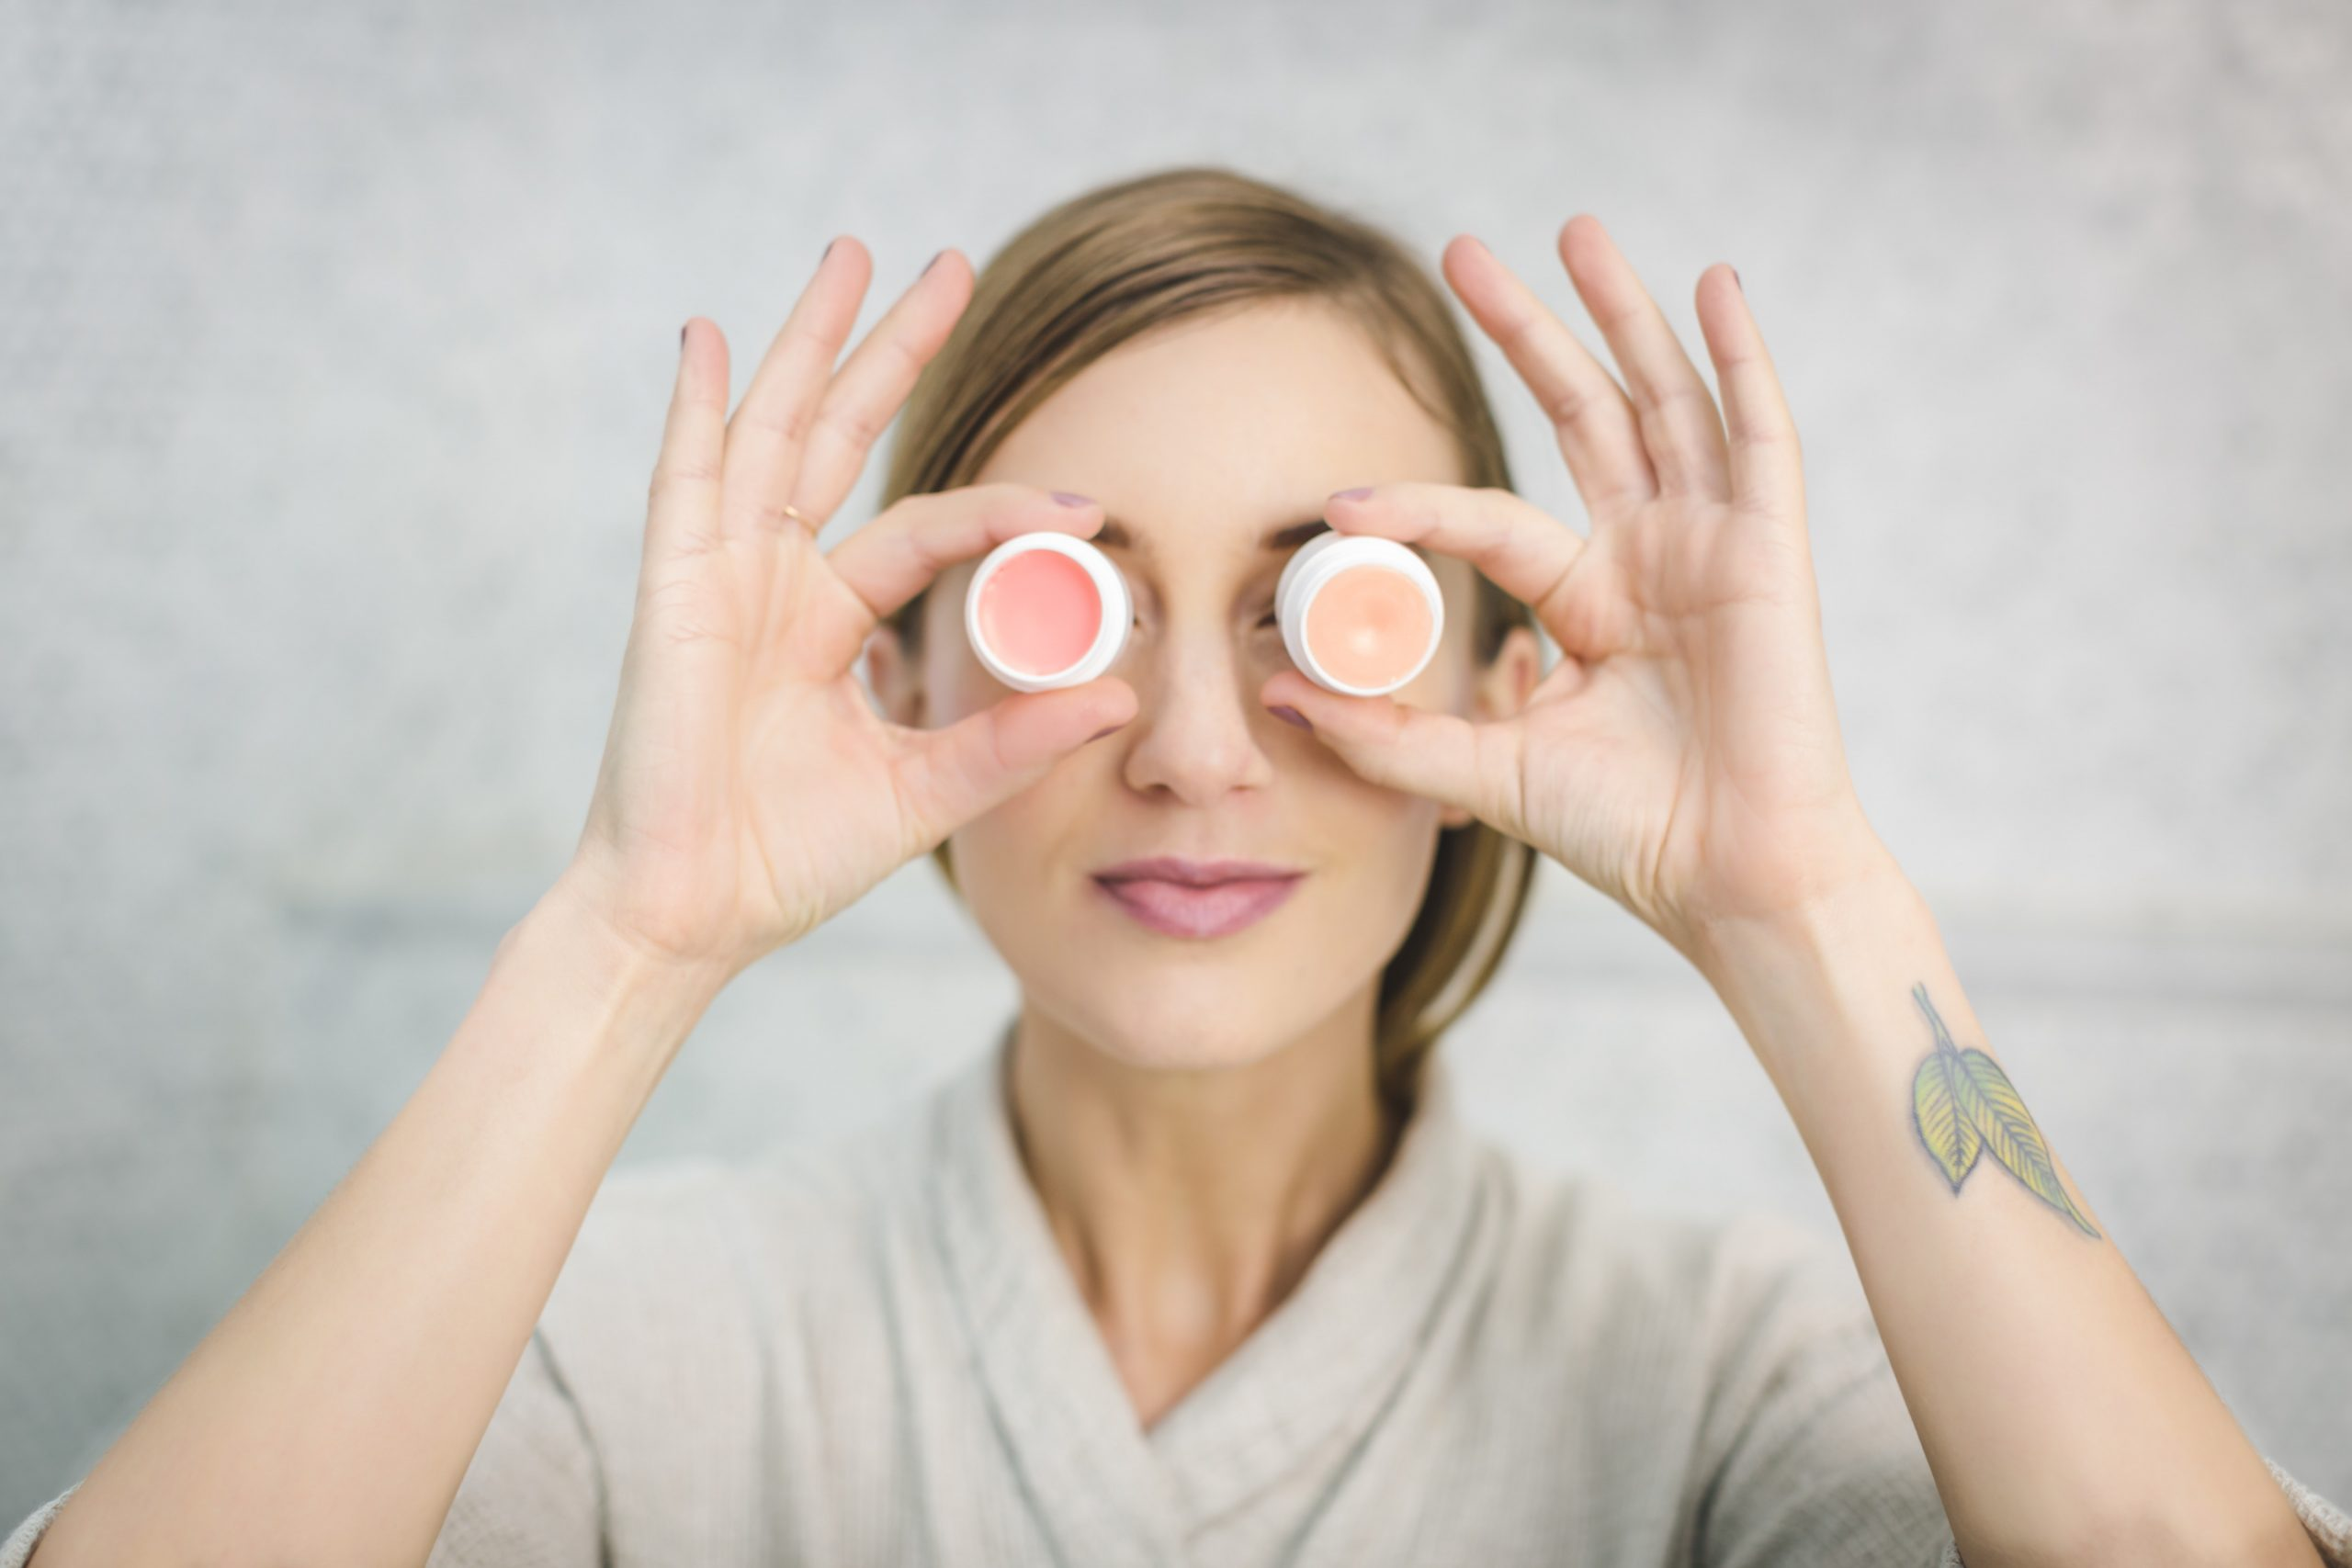 woman holding skincare products against her eyes